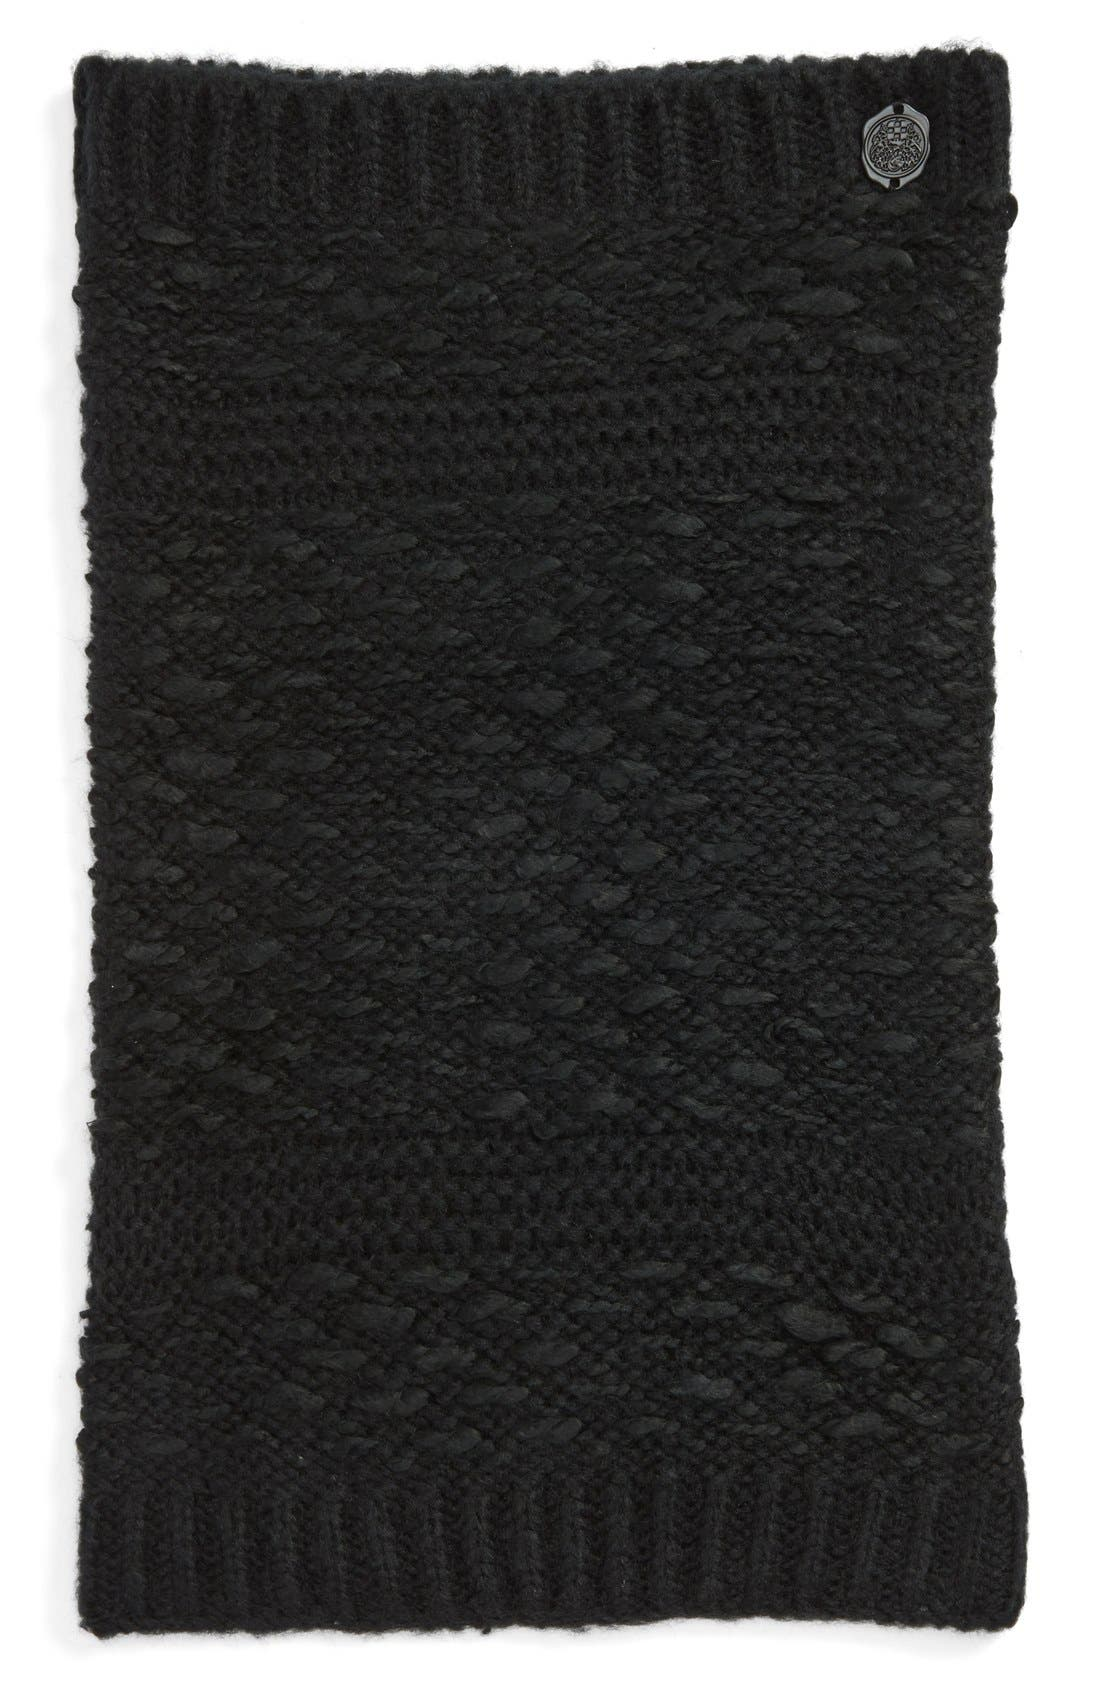 'Thick Thin' Knit Infinity Scarf,                             Alternate thumbnail 2, color,                             001